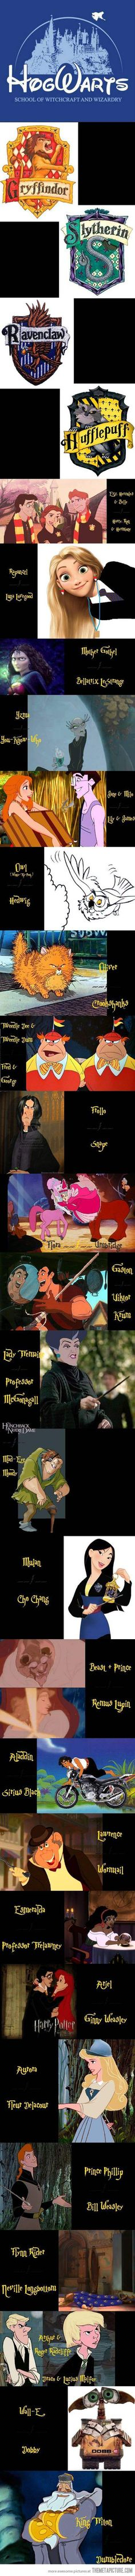 If Harry Potter was made by Disney…haha cute